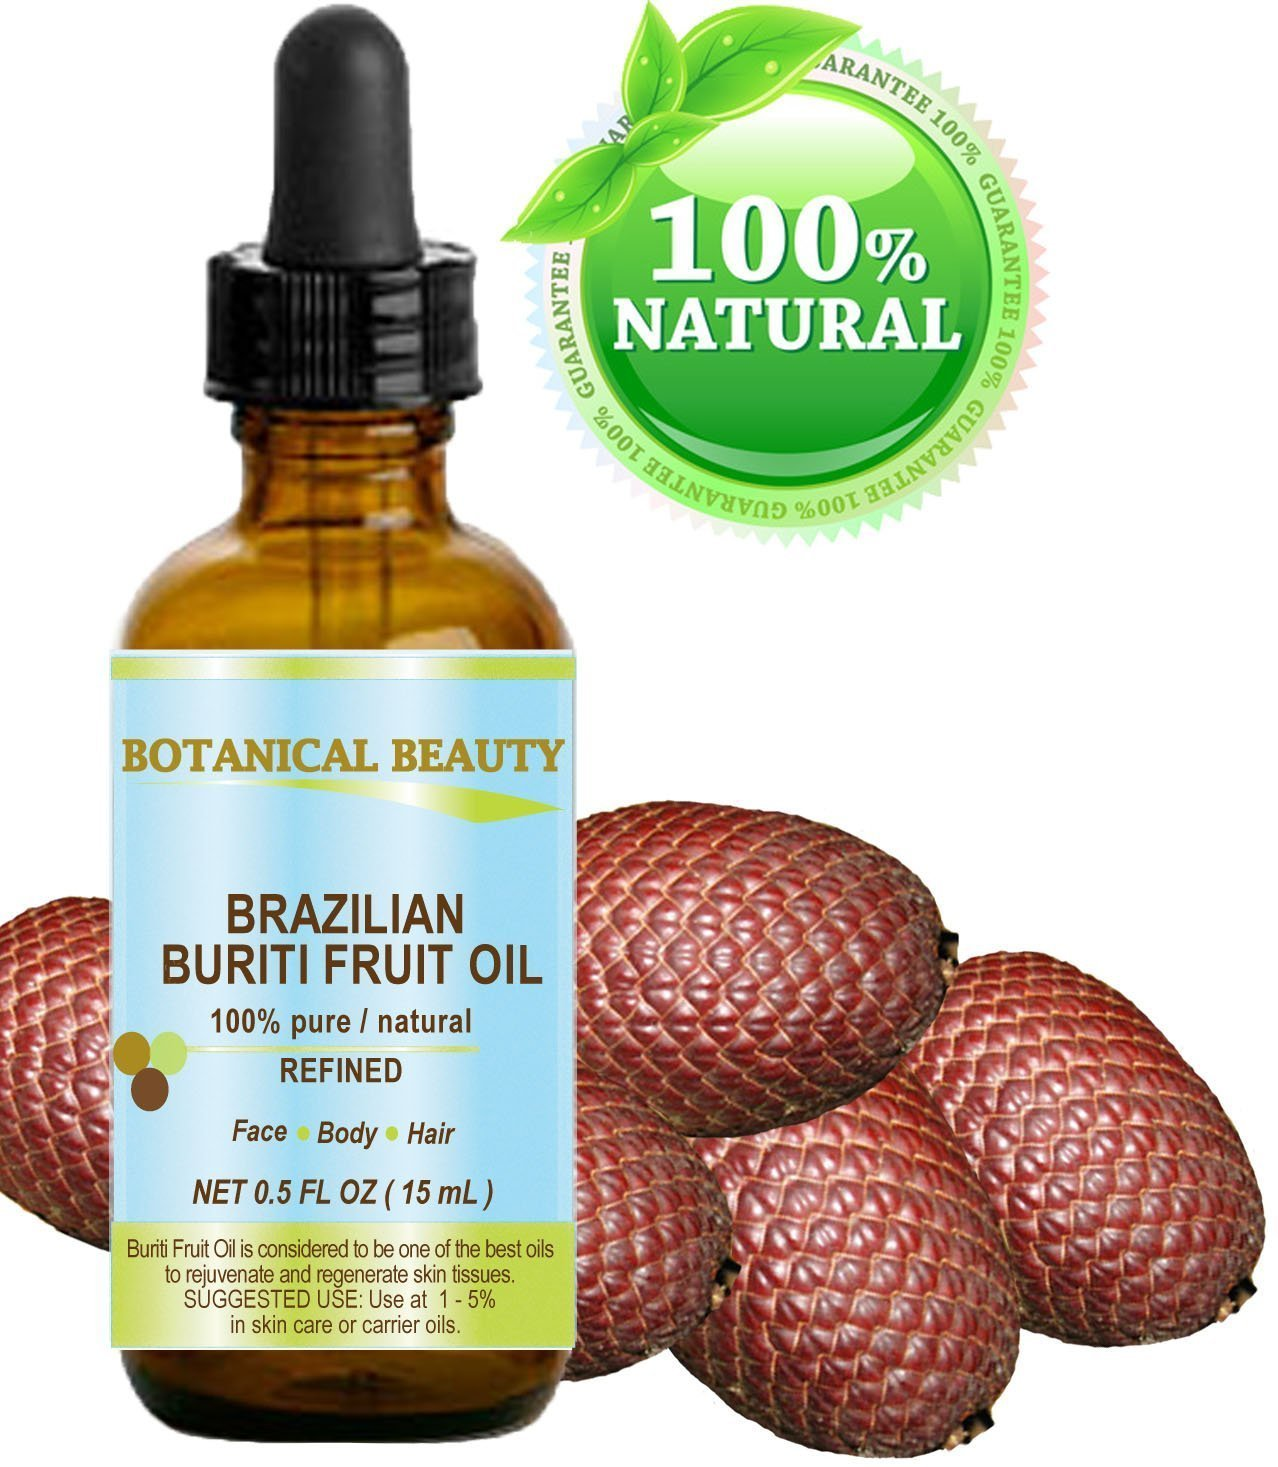 """BURITI FRUIT OIL Brazilian. 100% Pure / Natural / REFINED Undiluted Cold Pressed Carrier Oil . For Face, Body, Hair, Lip and Nail Care. 0.5 fl oz- 15 ml. """"One the richest natural source of vitamin A, E and C"""" From Amazon Rainforest. by Botanical Beauty"""